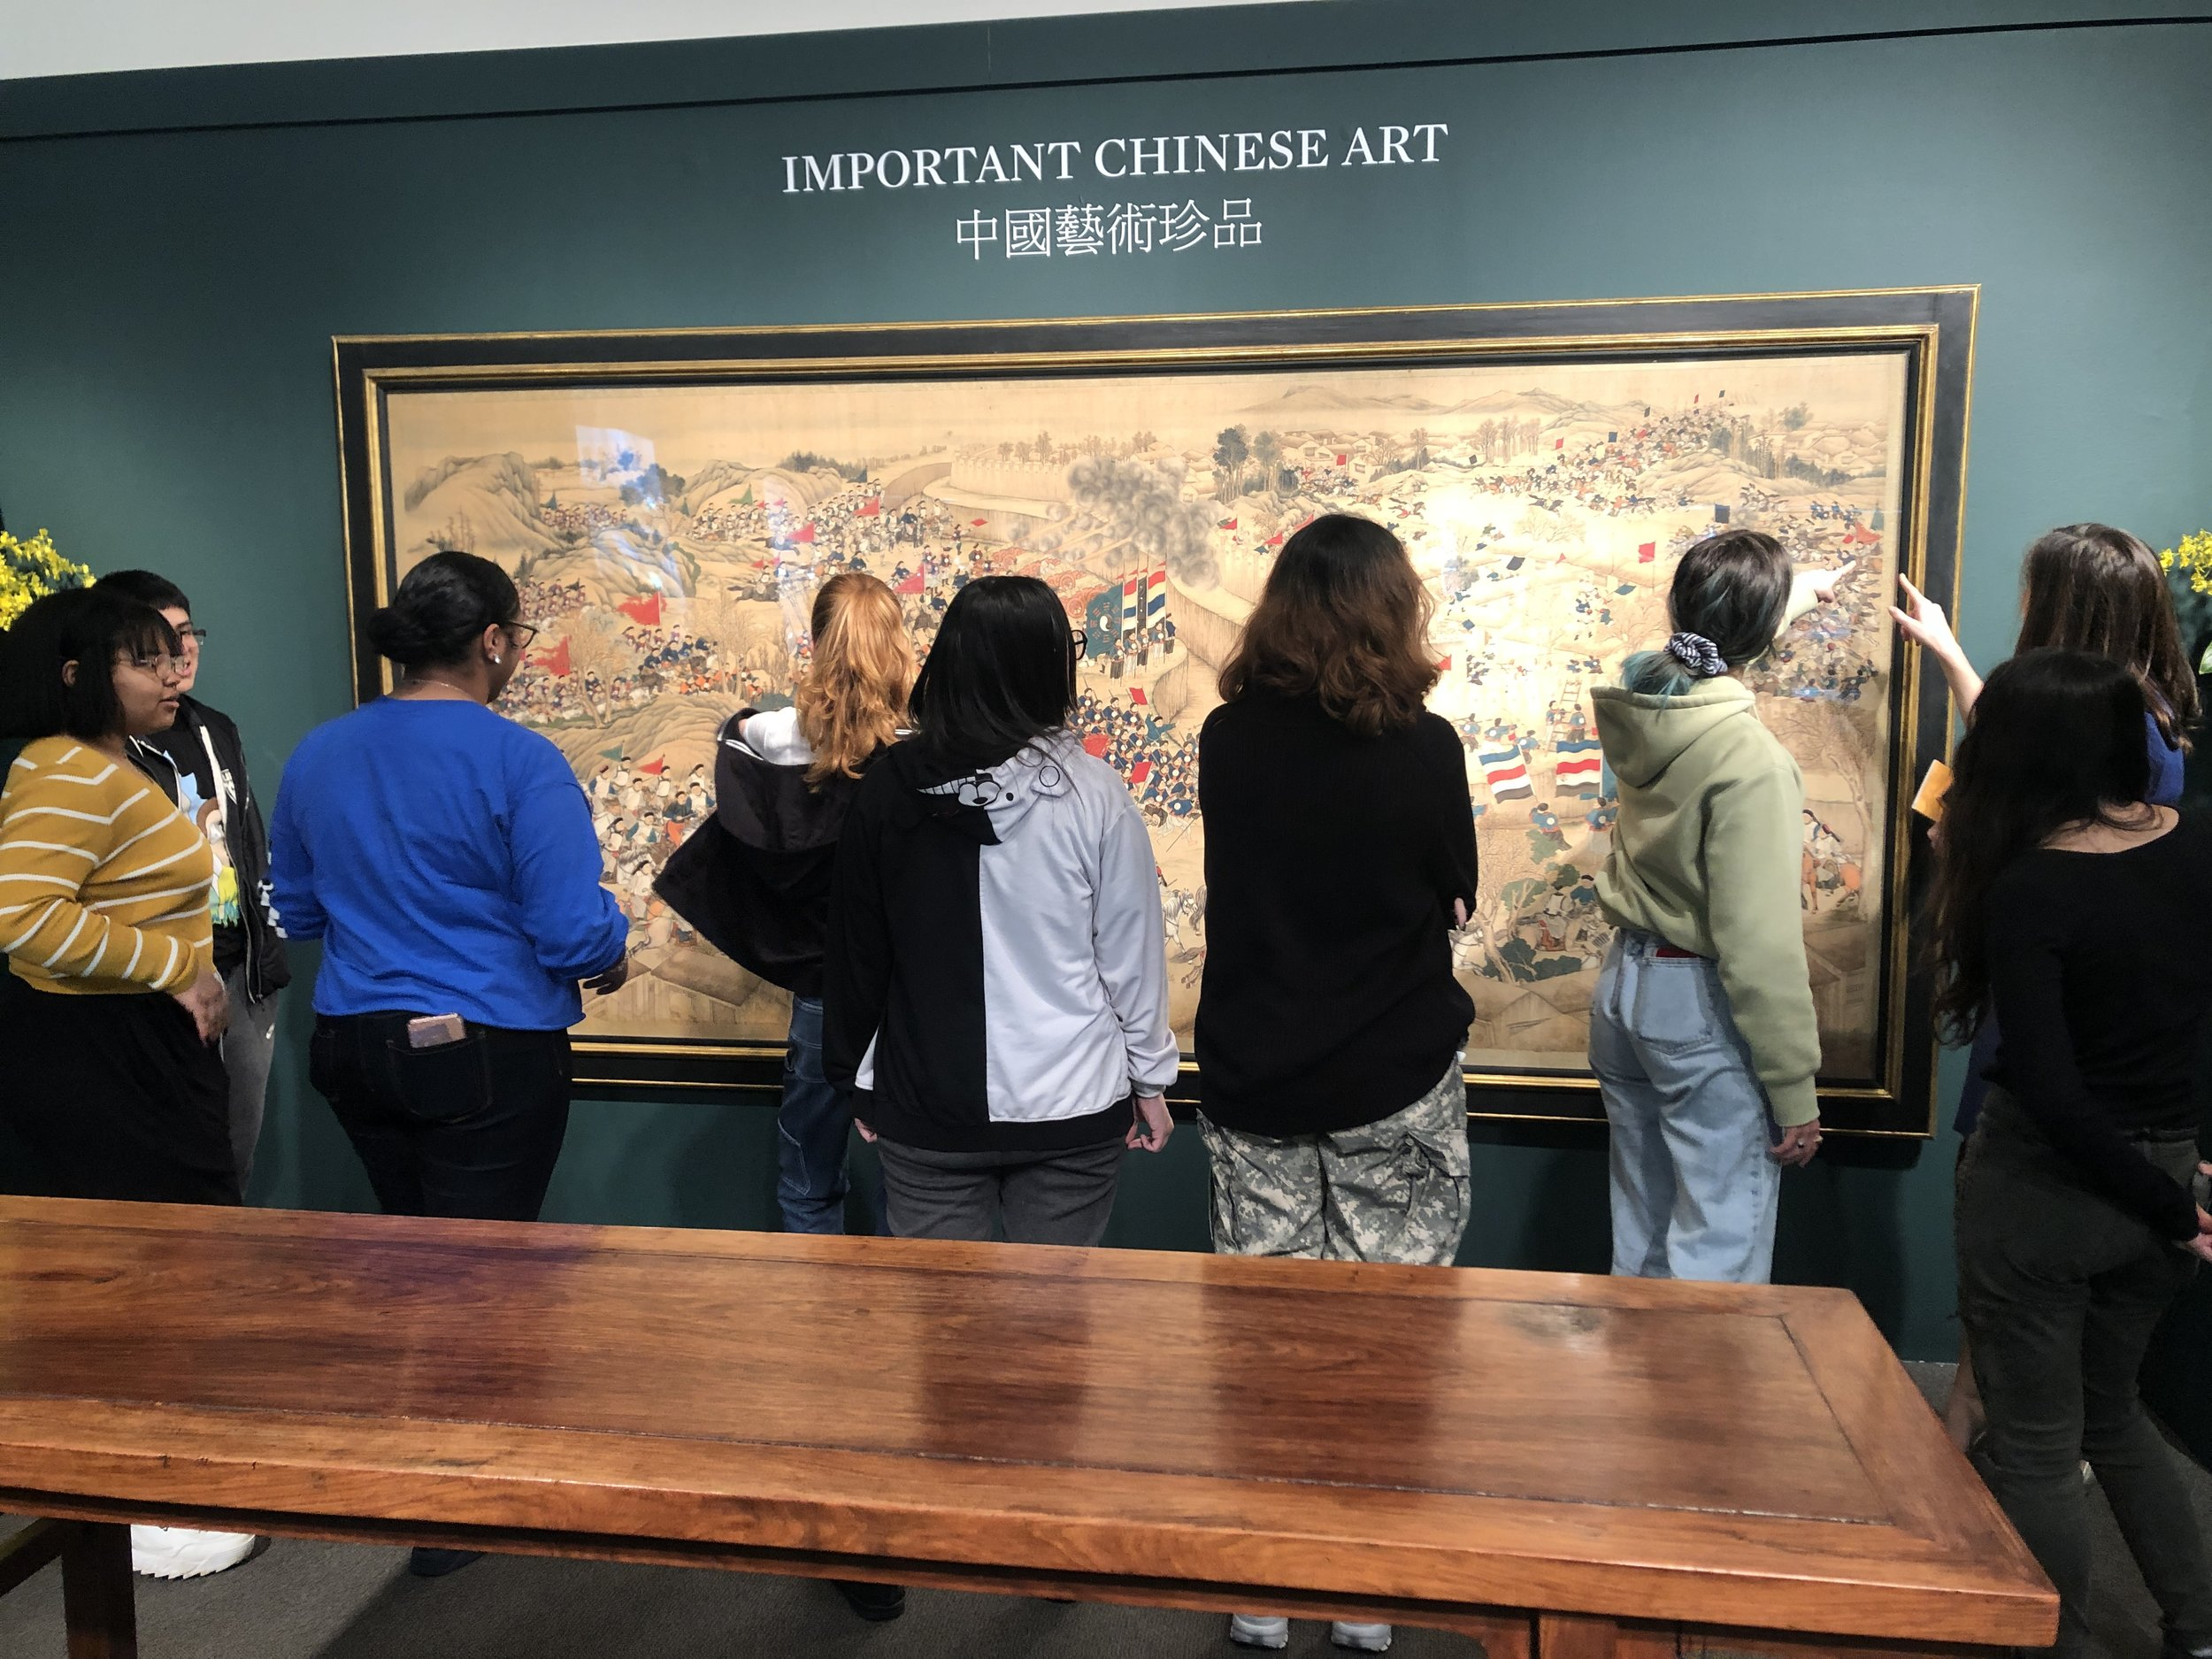 The CTC visits Sotheby's with Leah Adamucci, Samantha Anderson, and Rebecca Lockwood and tours the Asia Week Spring 2019 exhibition.